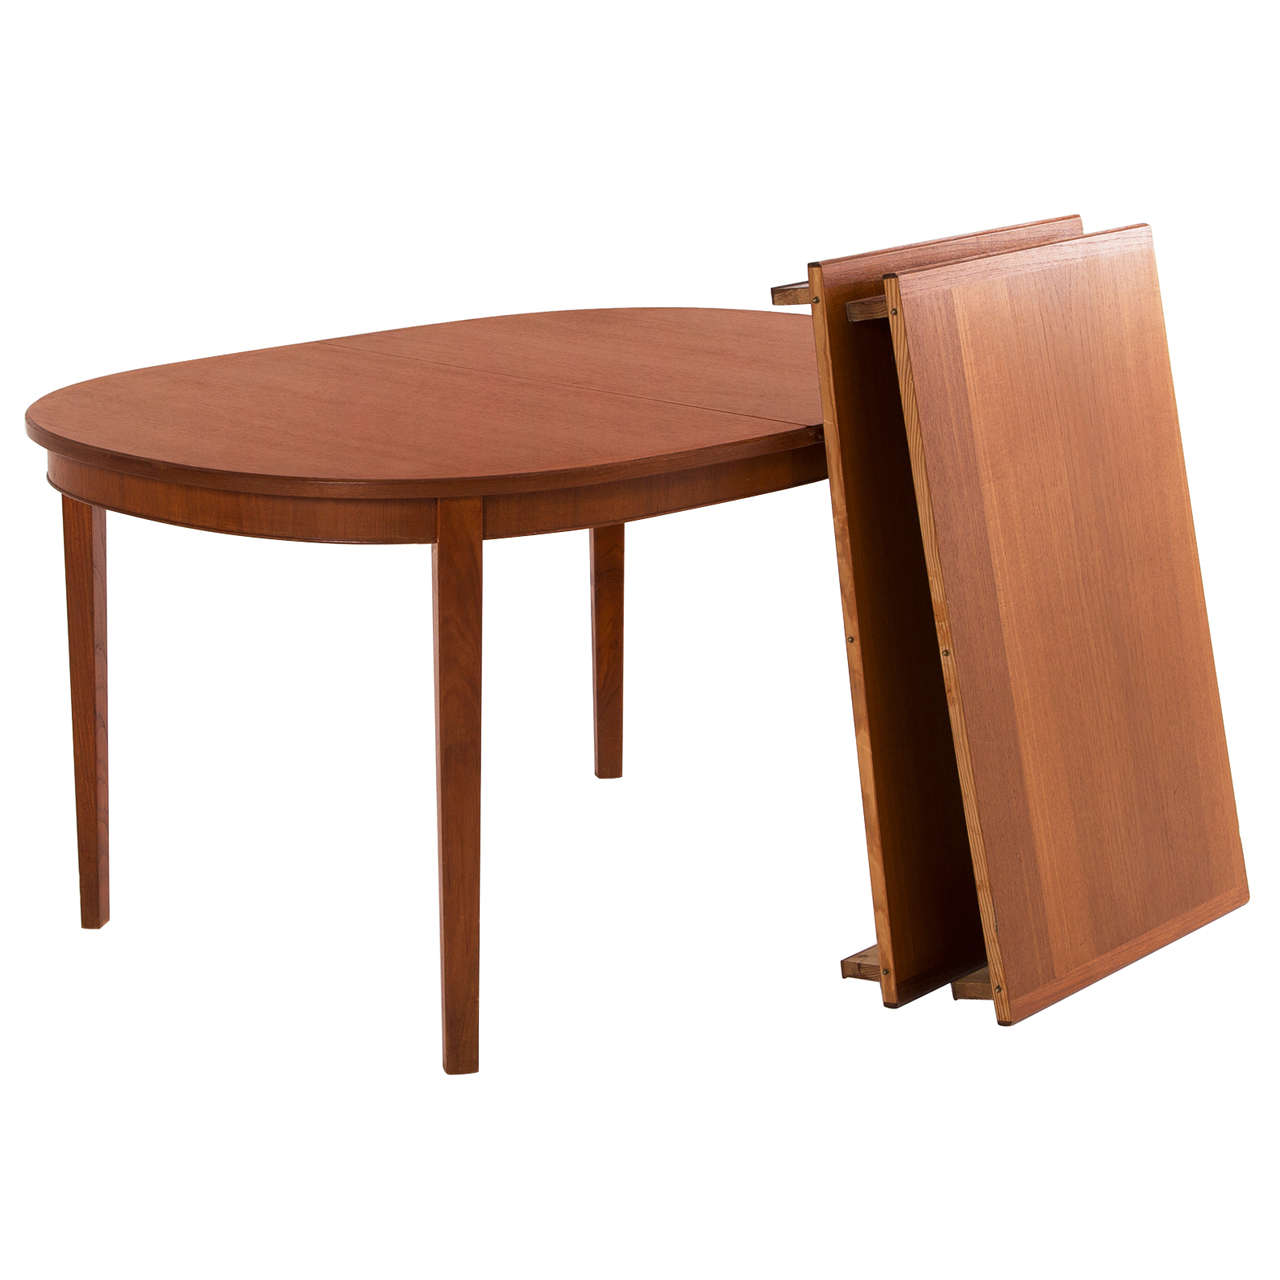 Extendable oval dining table in teak at 1stdibs Oval dining table